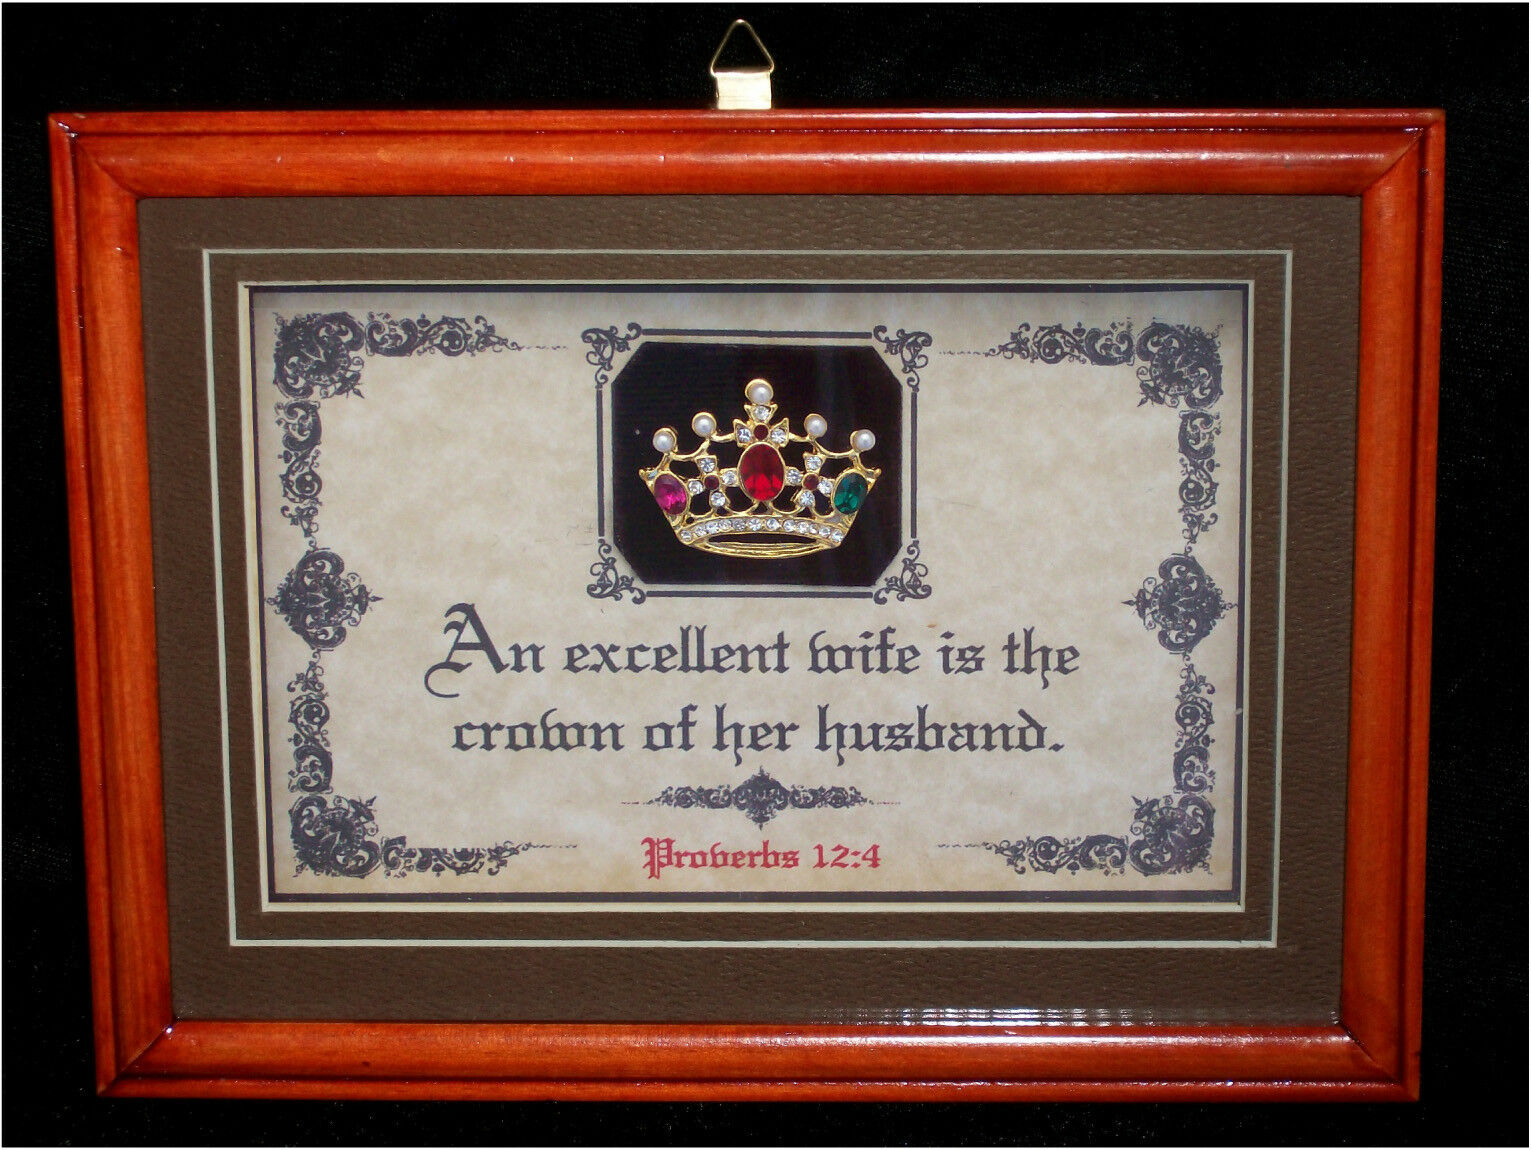 Wedding Gift Wife: EXCELLENT WIFE IS THE CROWN OF HER HUSBAND-Bible Verse